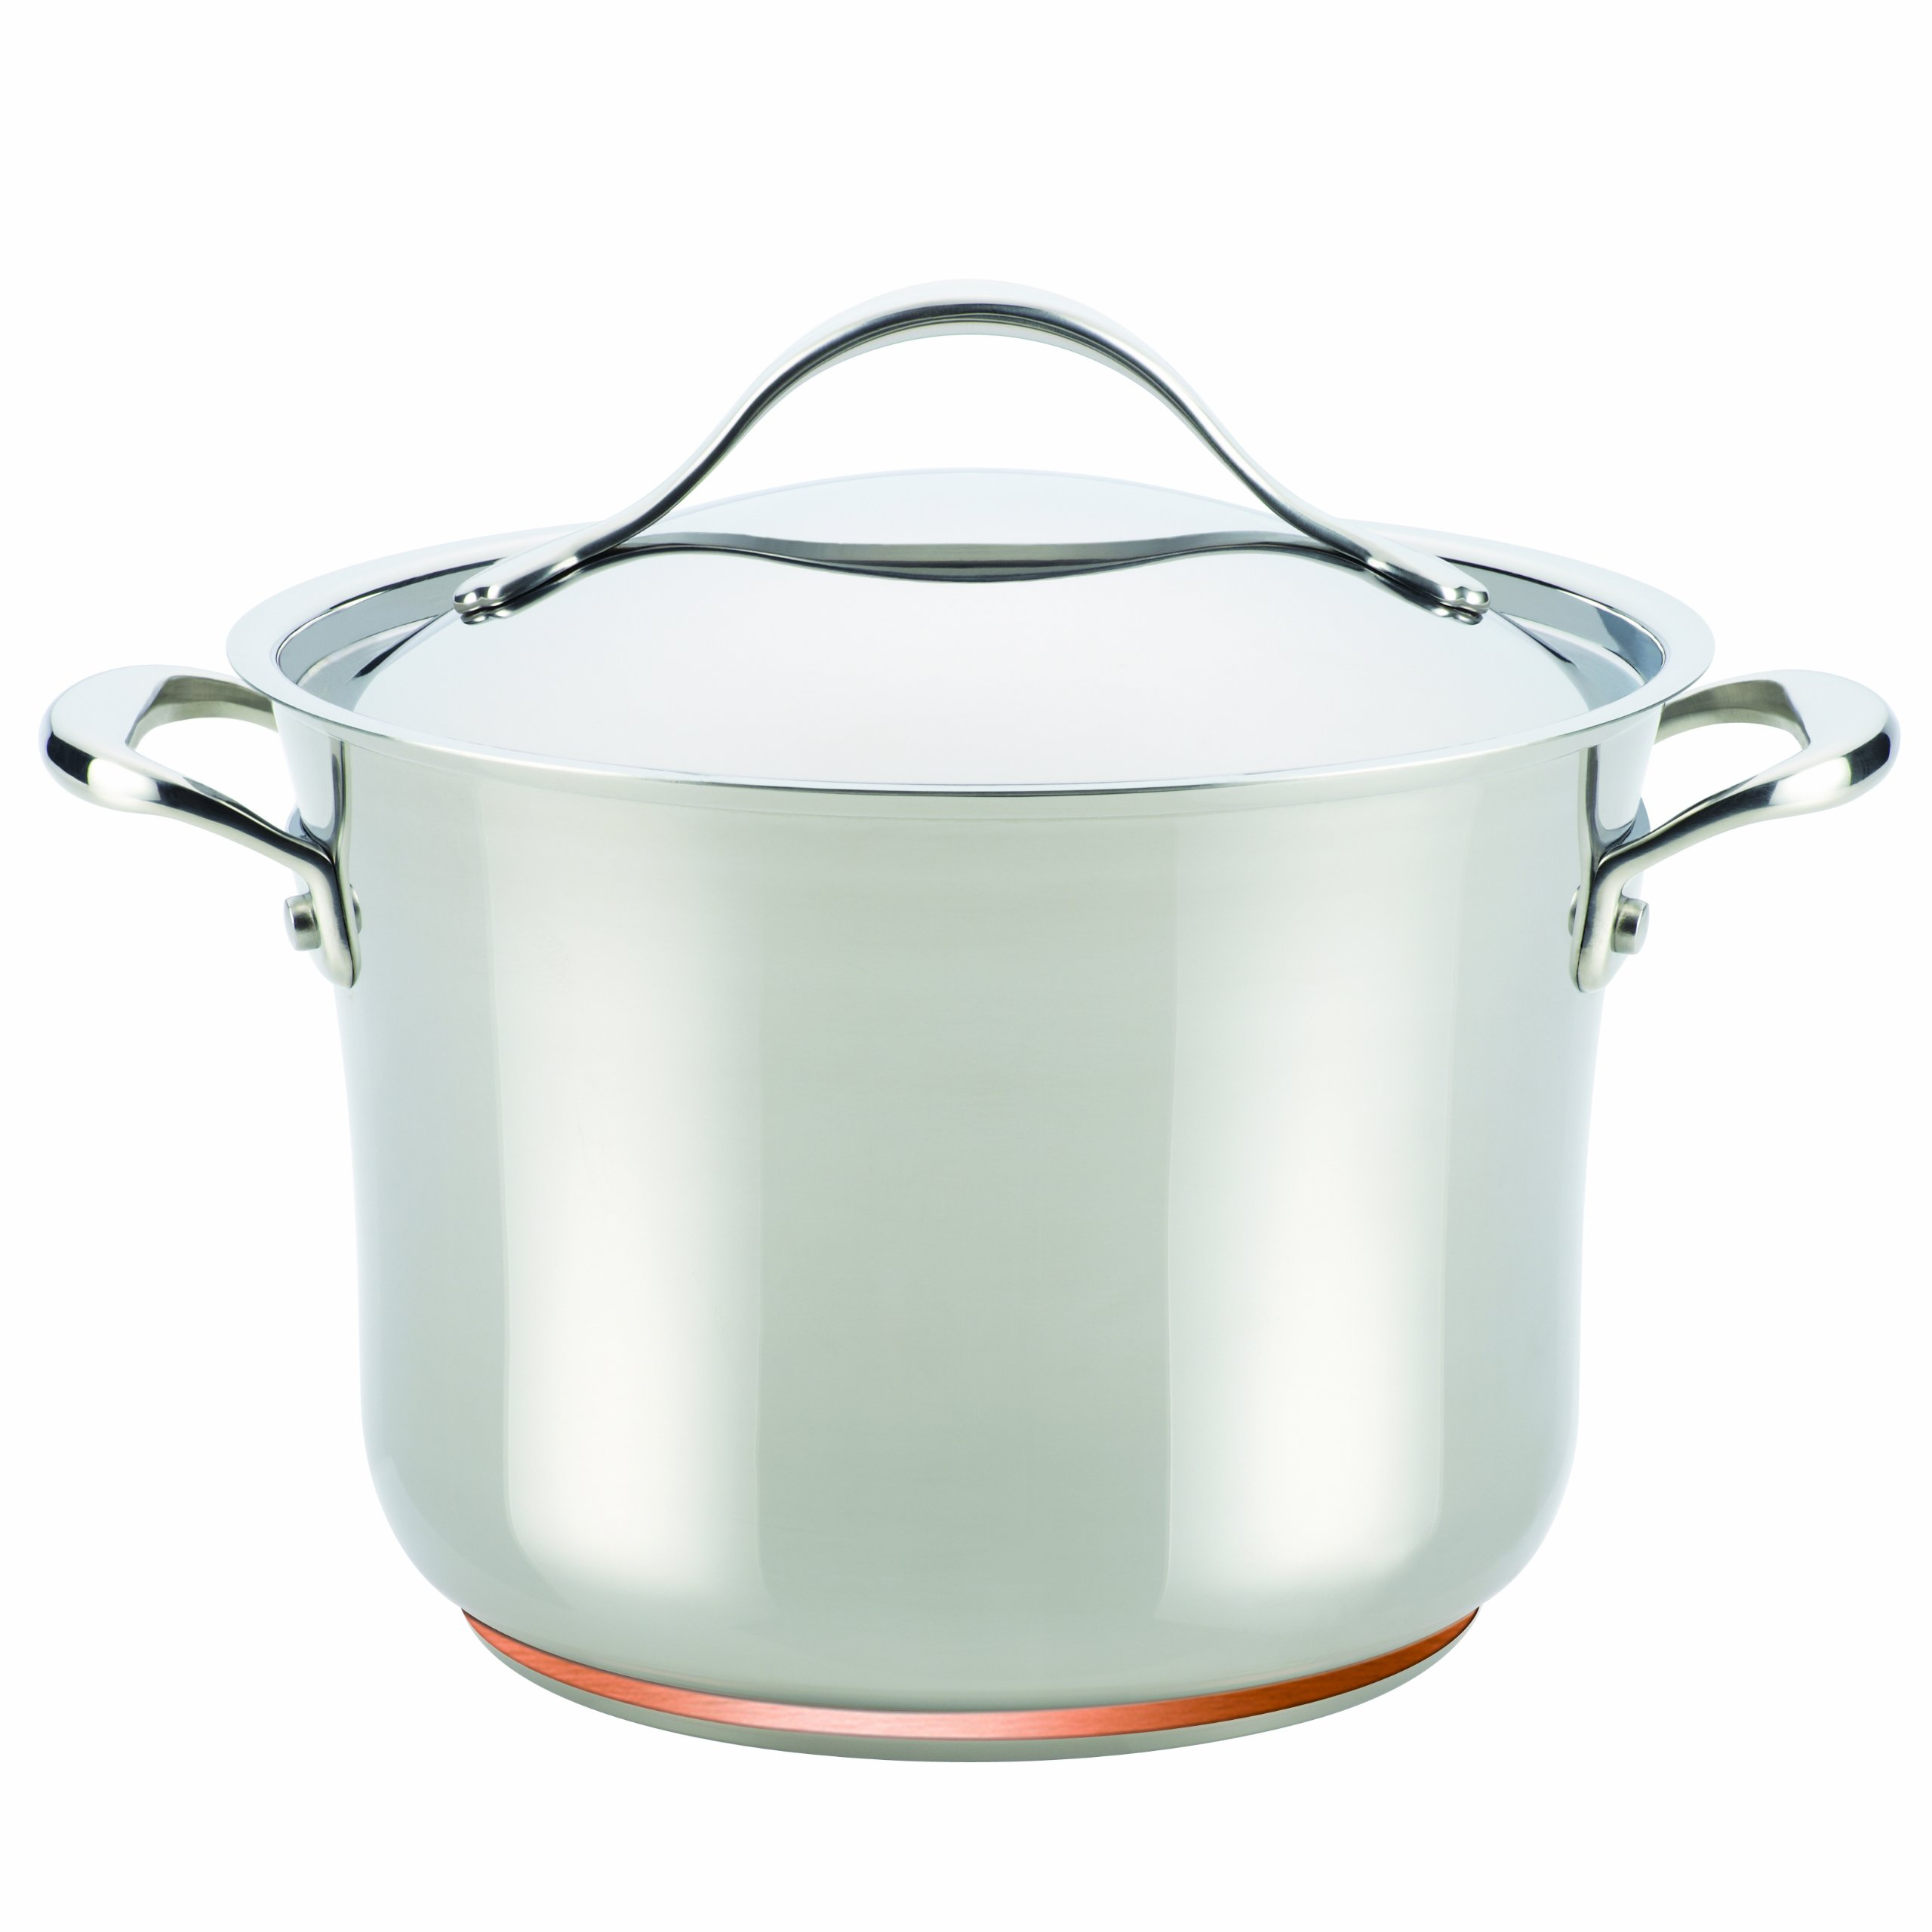 Anolon Nouvelle Copper Stainless Steel 6.5-Quart Covered Stockpot